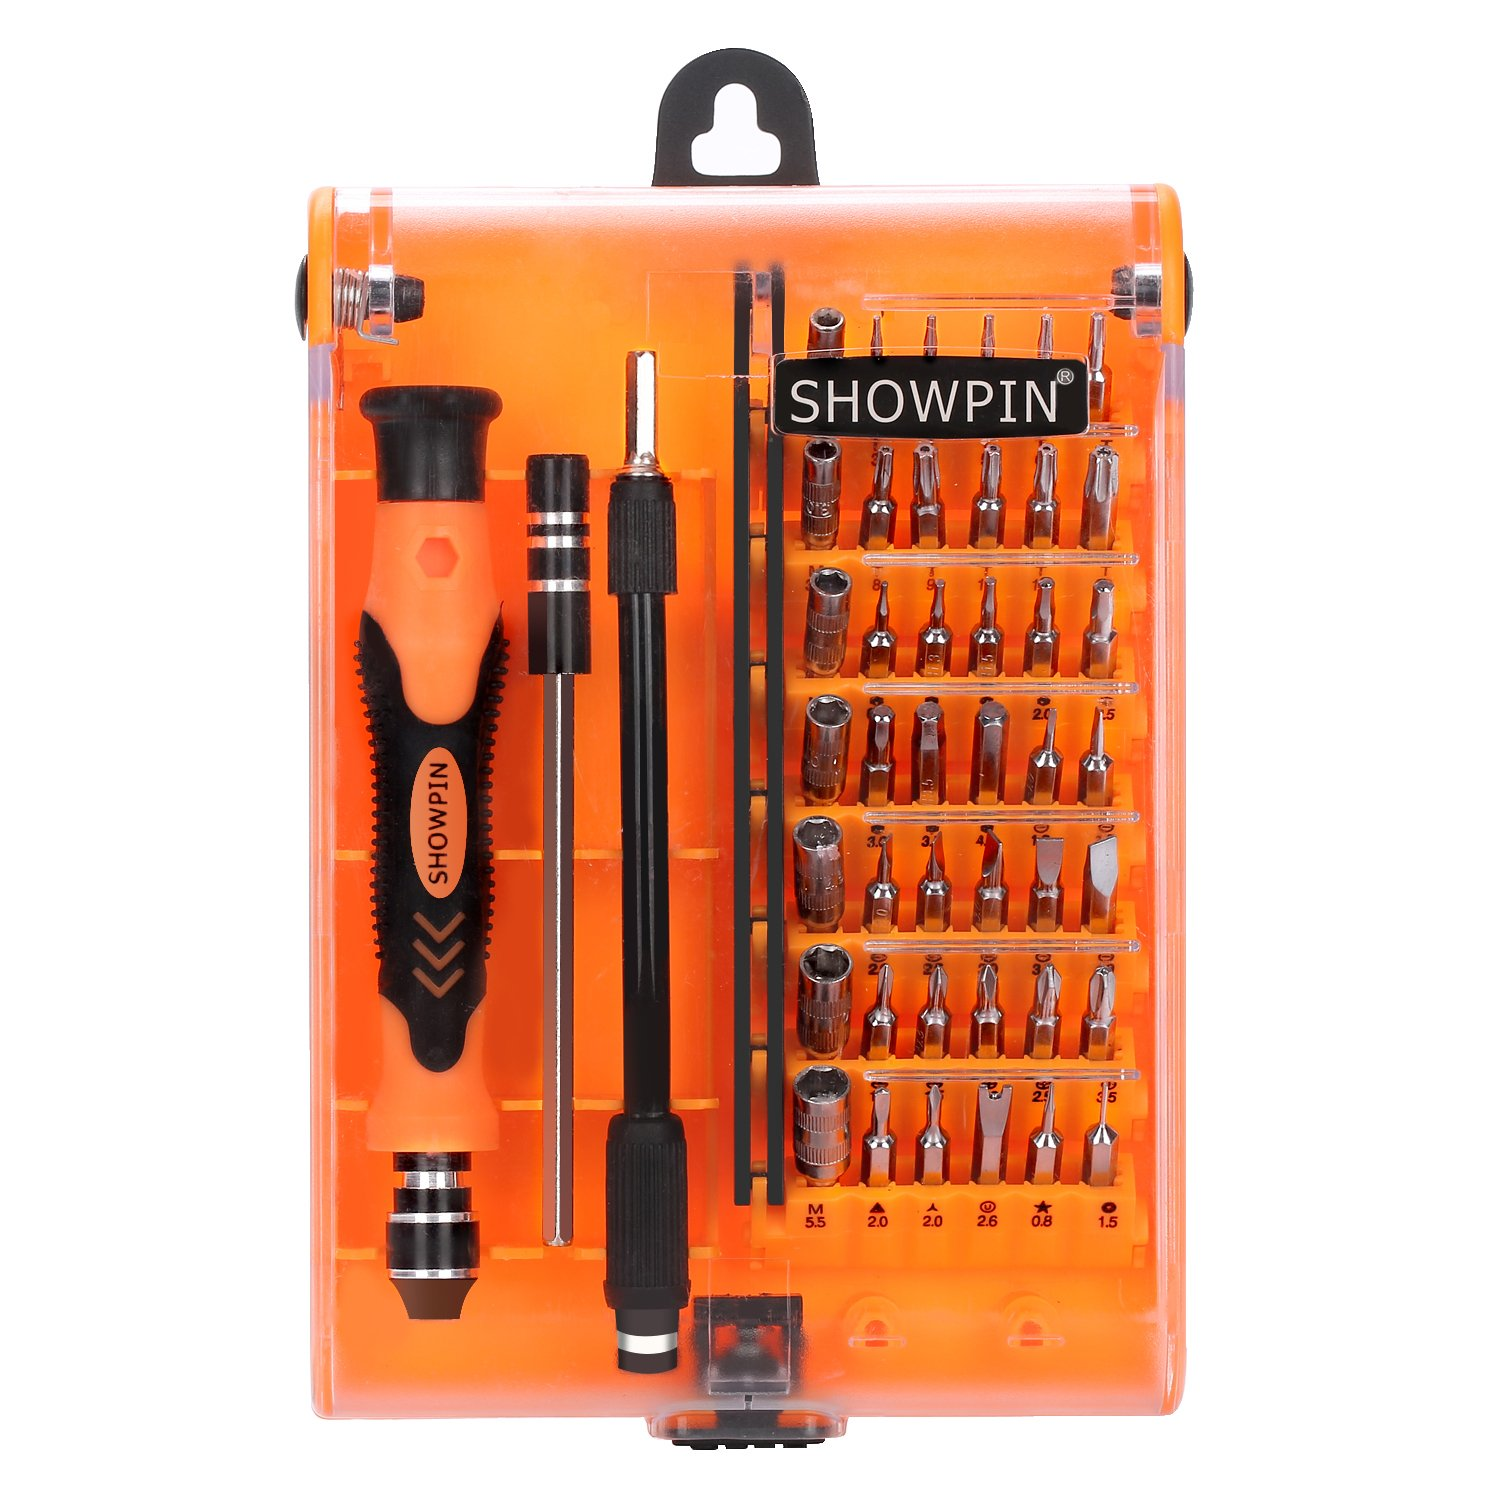 Showpin 45in1 Mini Precision Screwdriver Set with Case with Tweezer Handle and Small Torx Hex Bits,Professional Repair Tool Kit with 42 Magnetic Bits,for PC,iphone,Tablet,Laptop,Camera,Game Console by Showpin (Image #1)